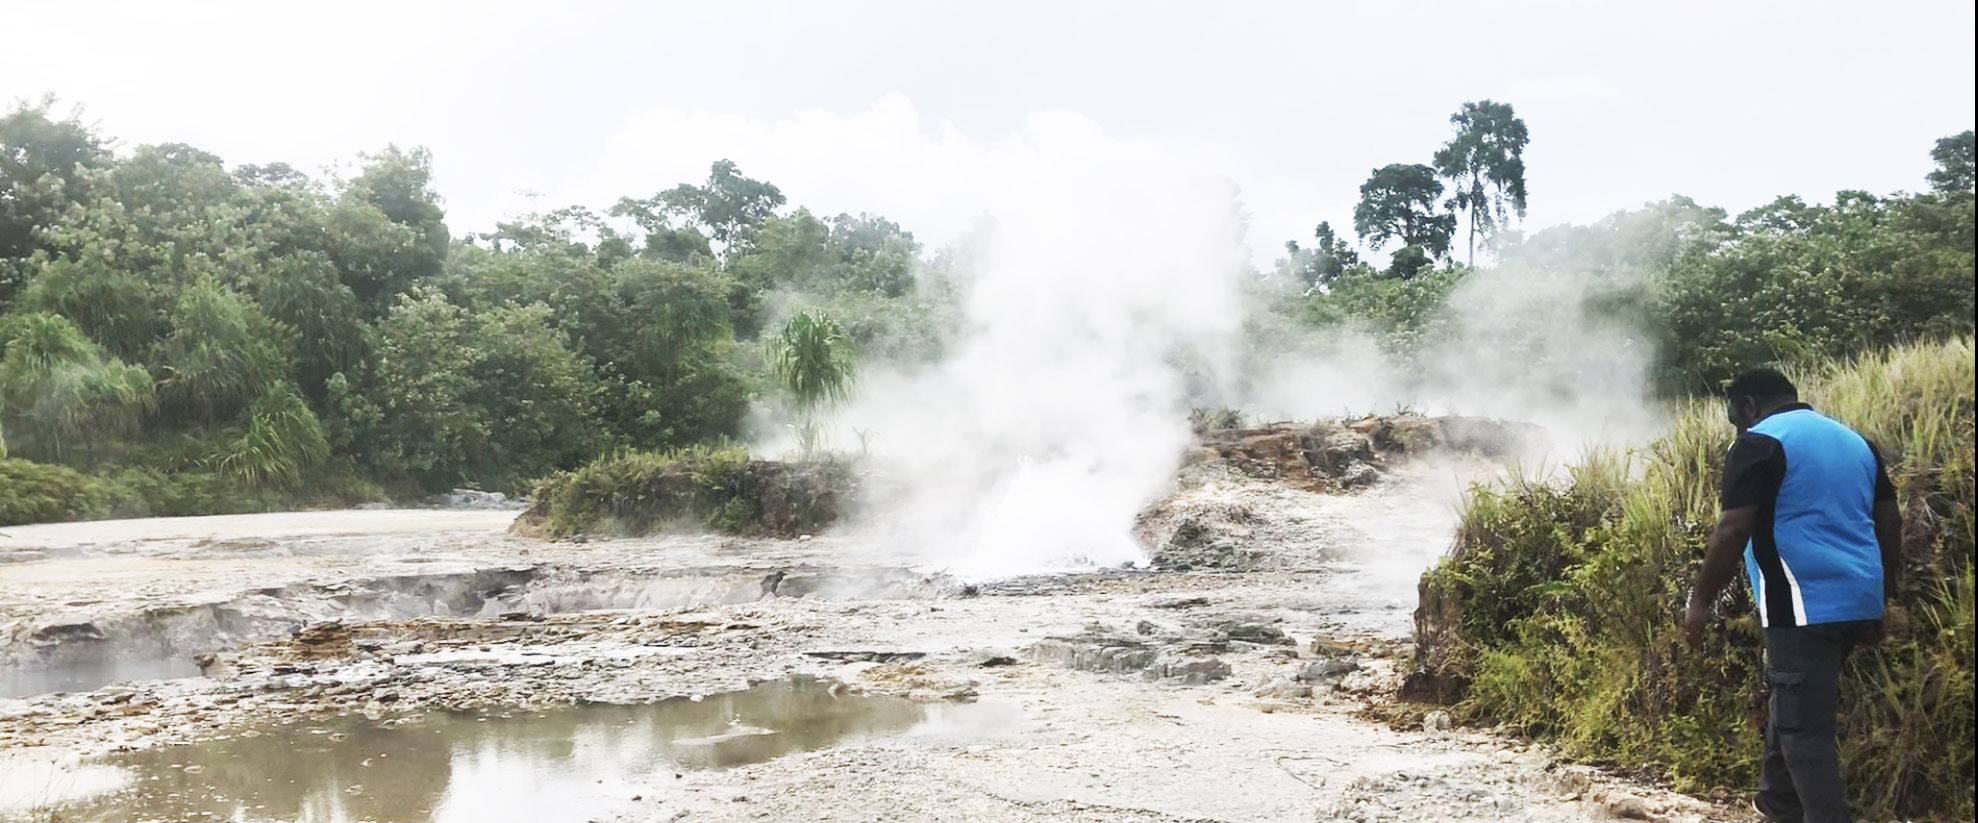 Pokili Sulphur Ponds in West New Britain Province